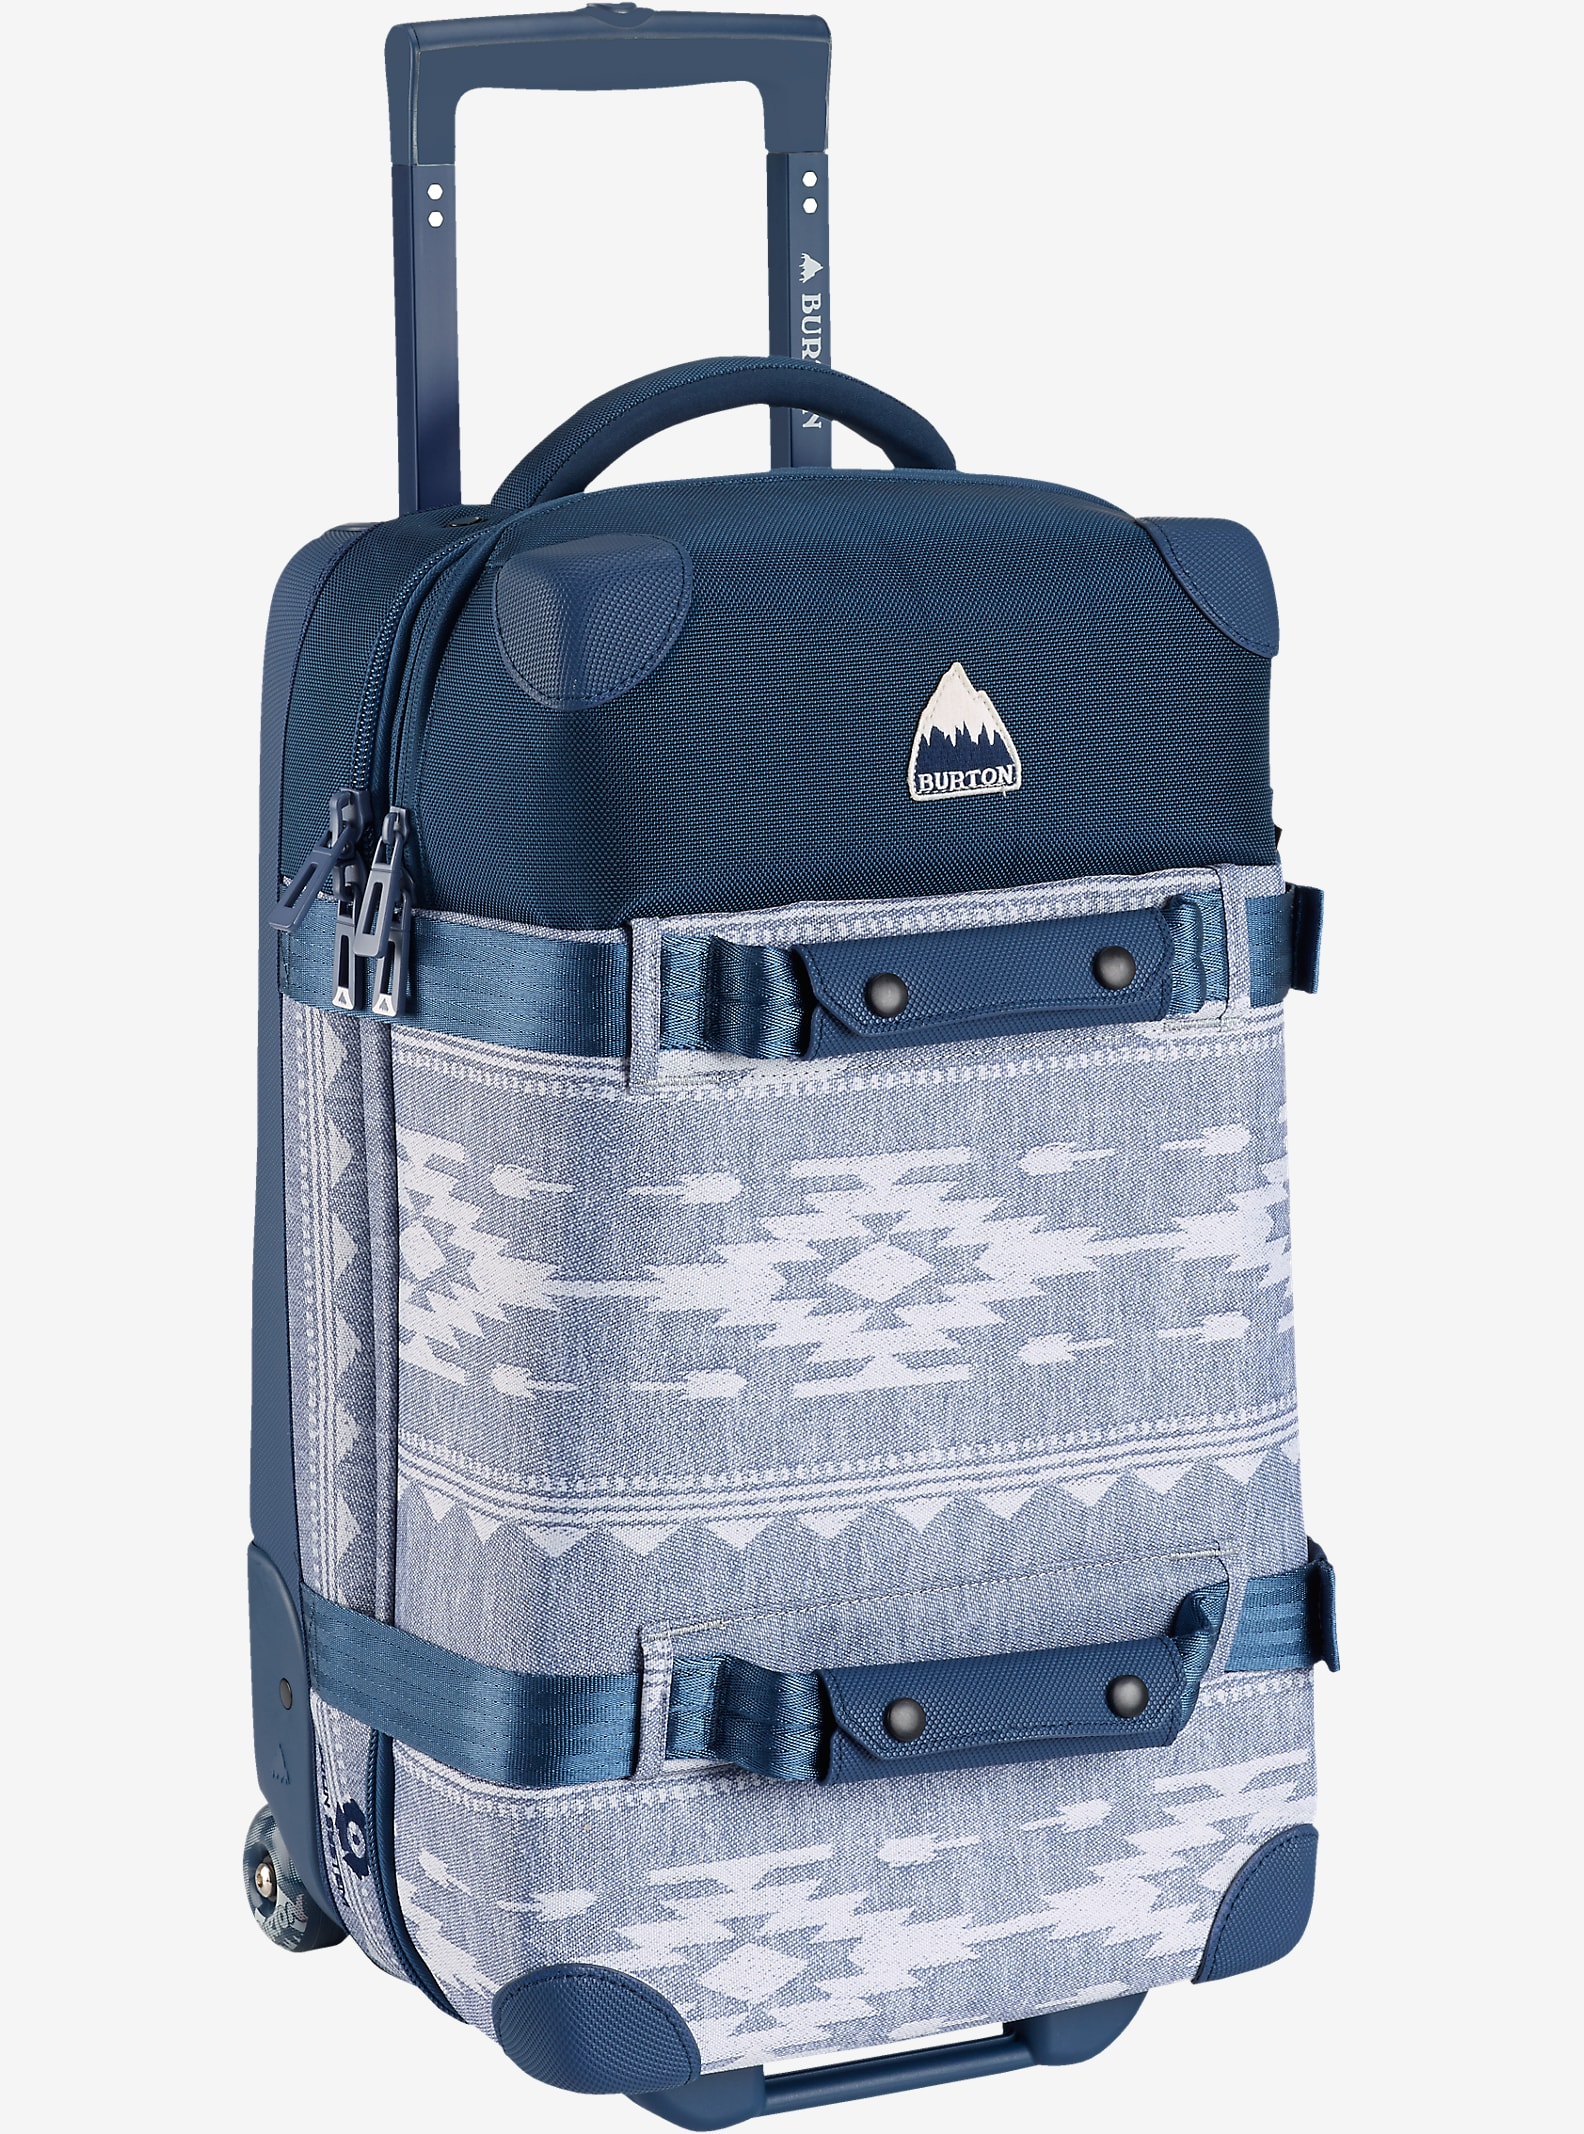 Burton Wheelie Flight Deck Travel Bag shown in Famish Stripe [bluesign® Approved Fabric]